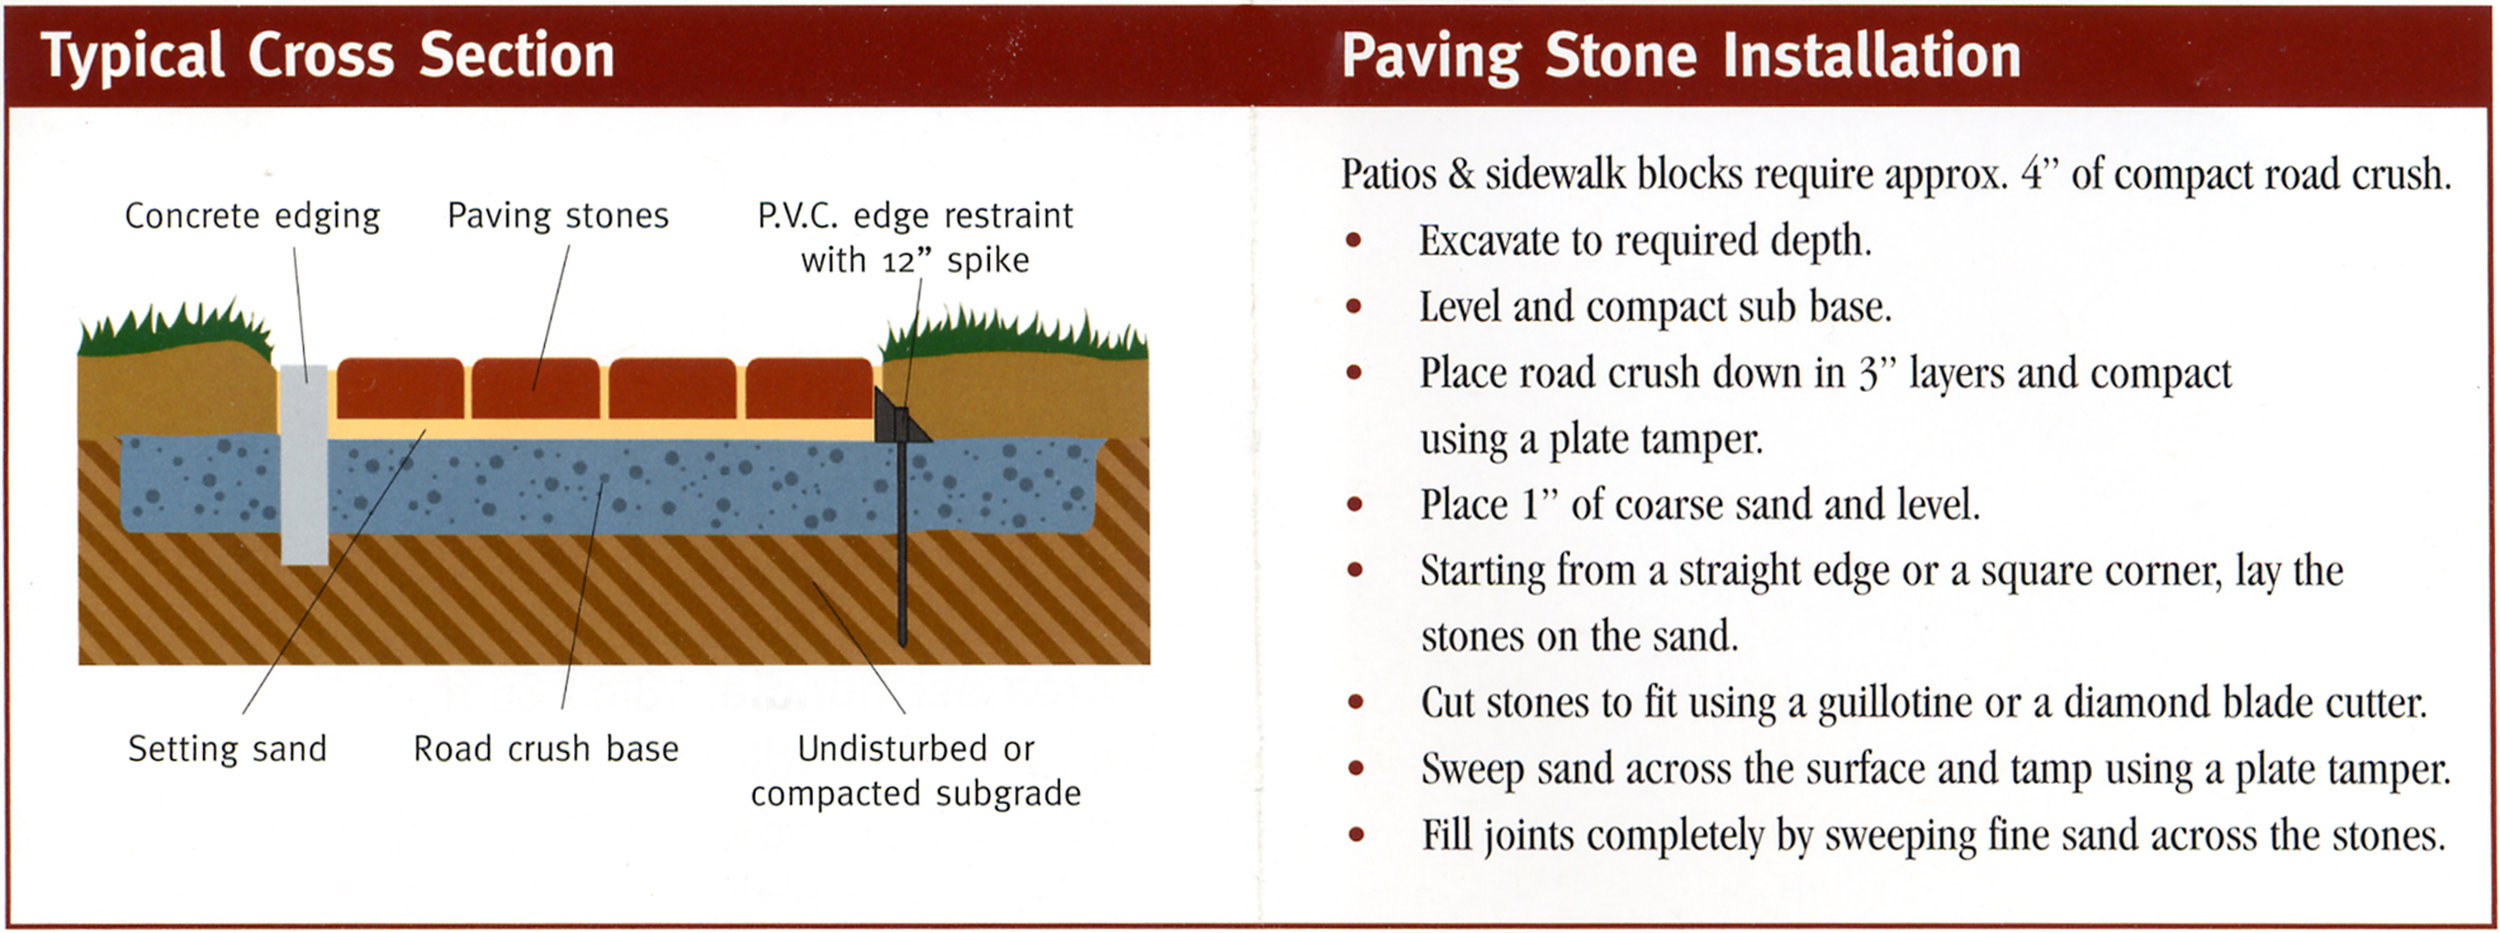 how-to-install-paving-stone.JPG